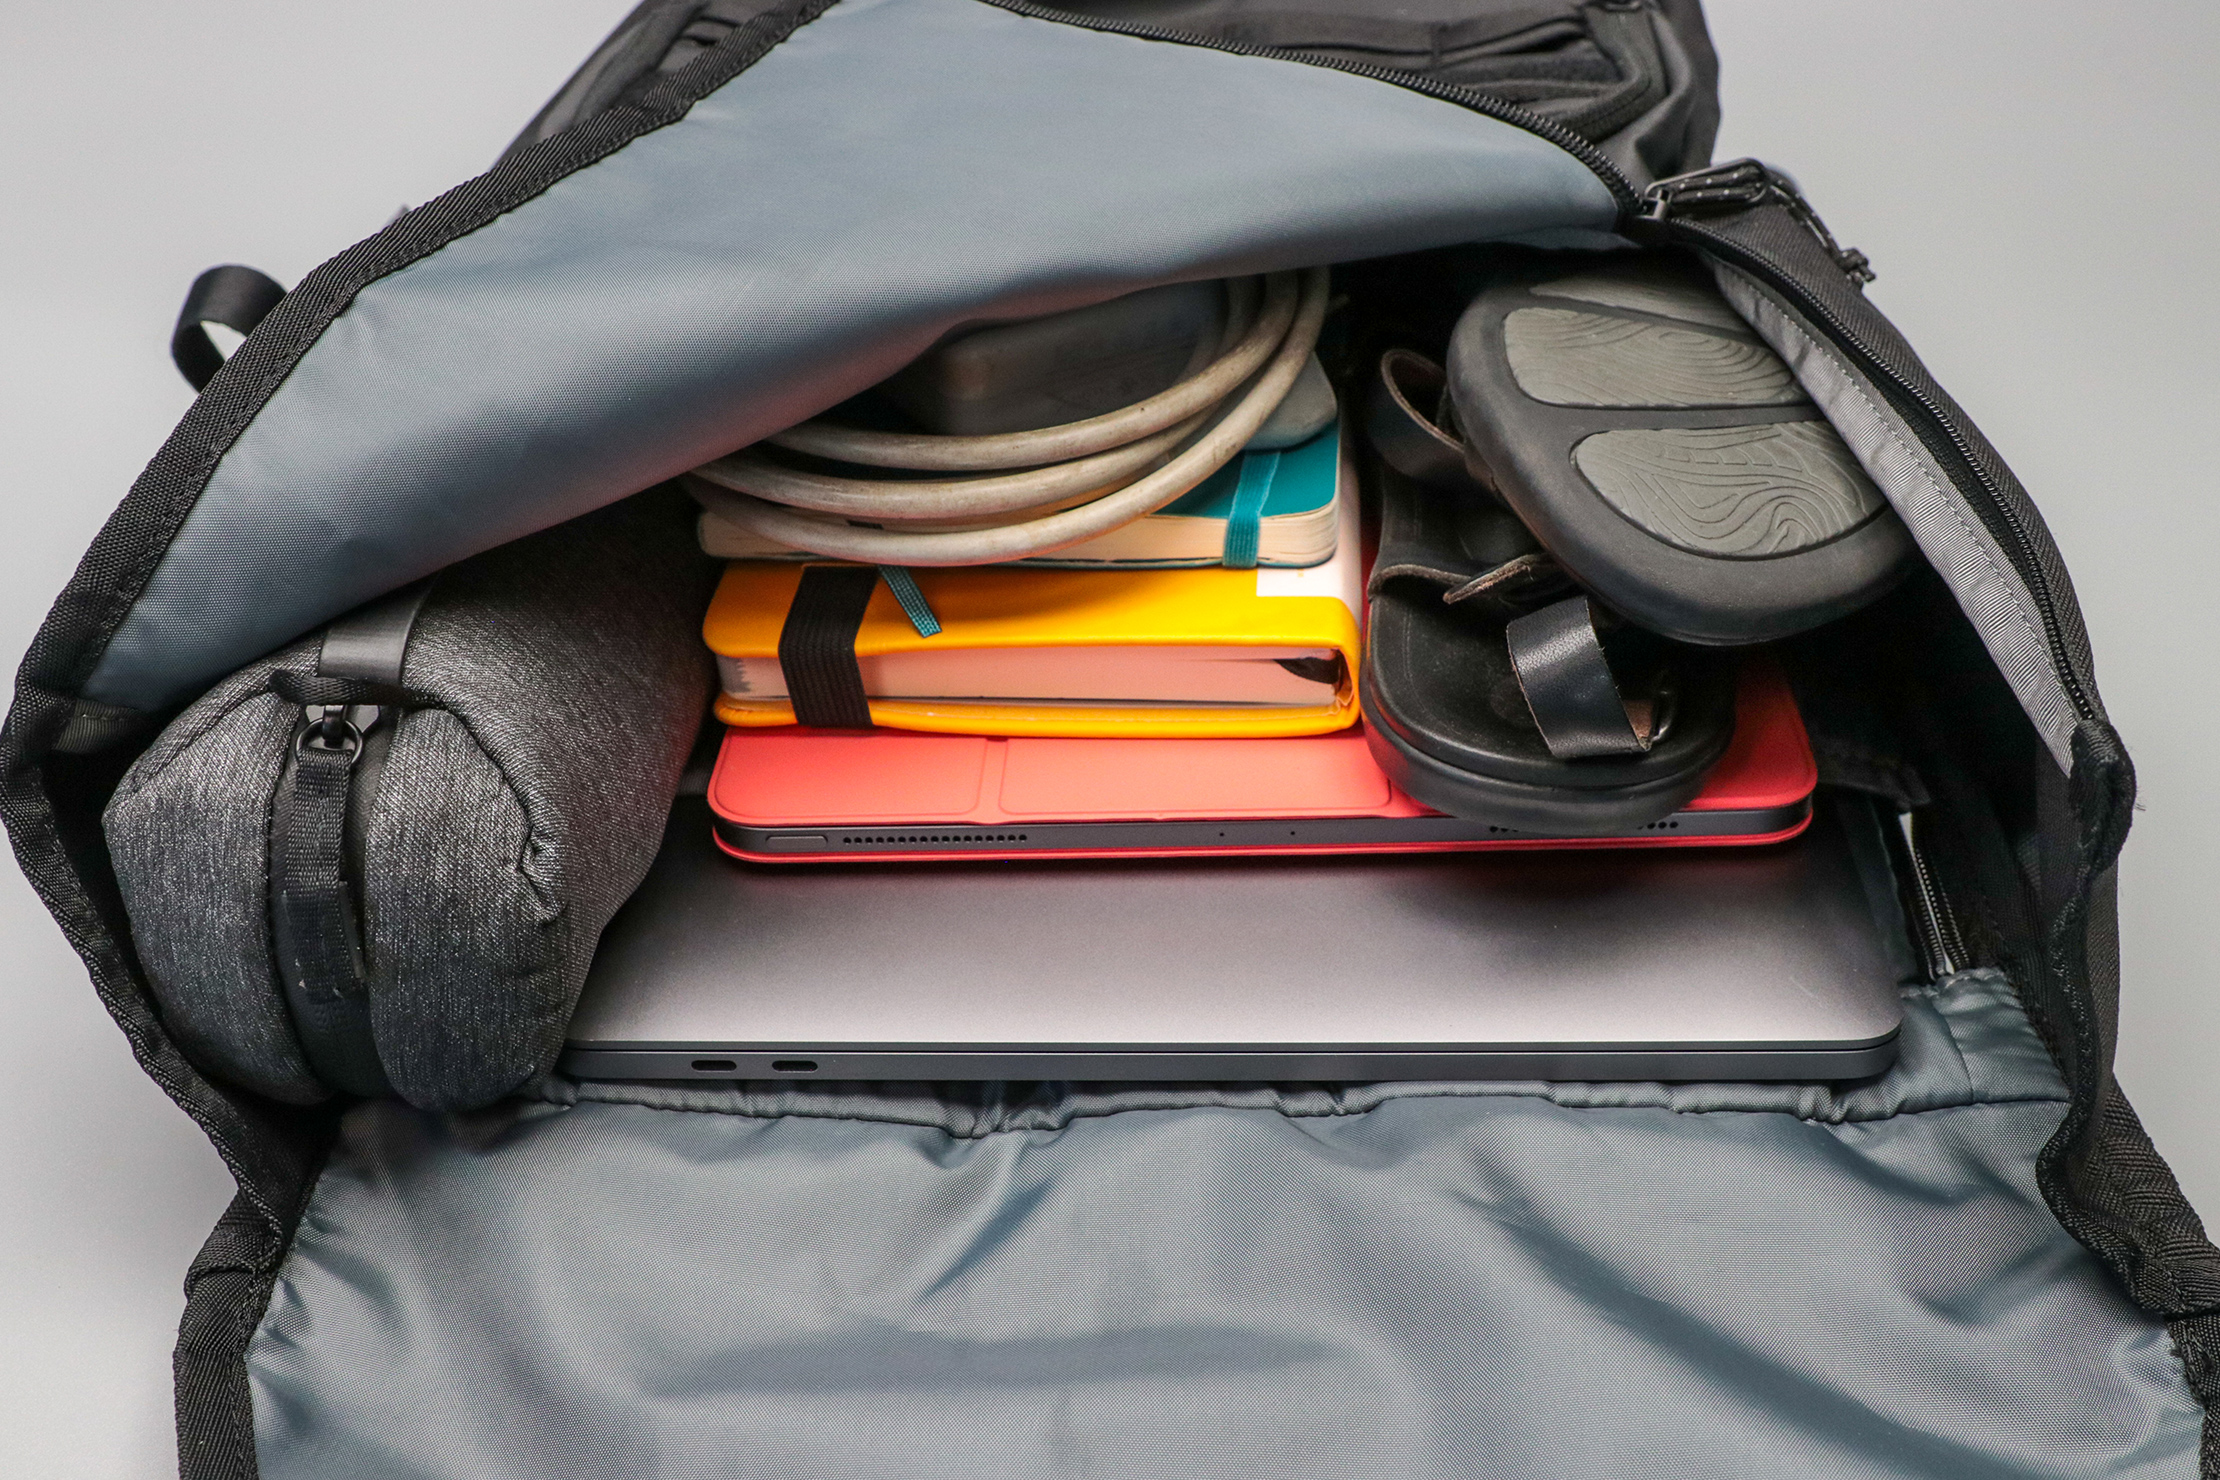 Timbuk2 Spire Laptop Backpack 2.0 packed with gear